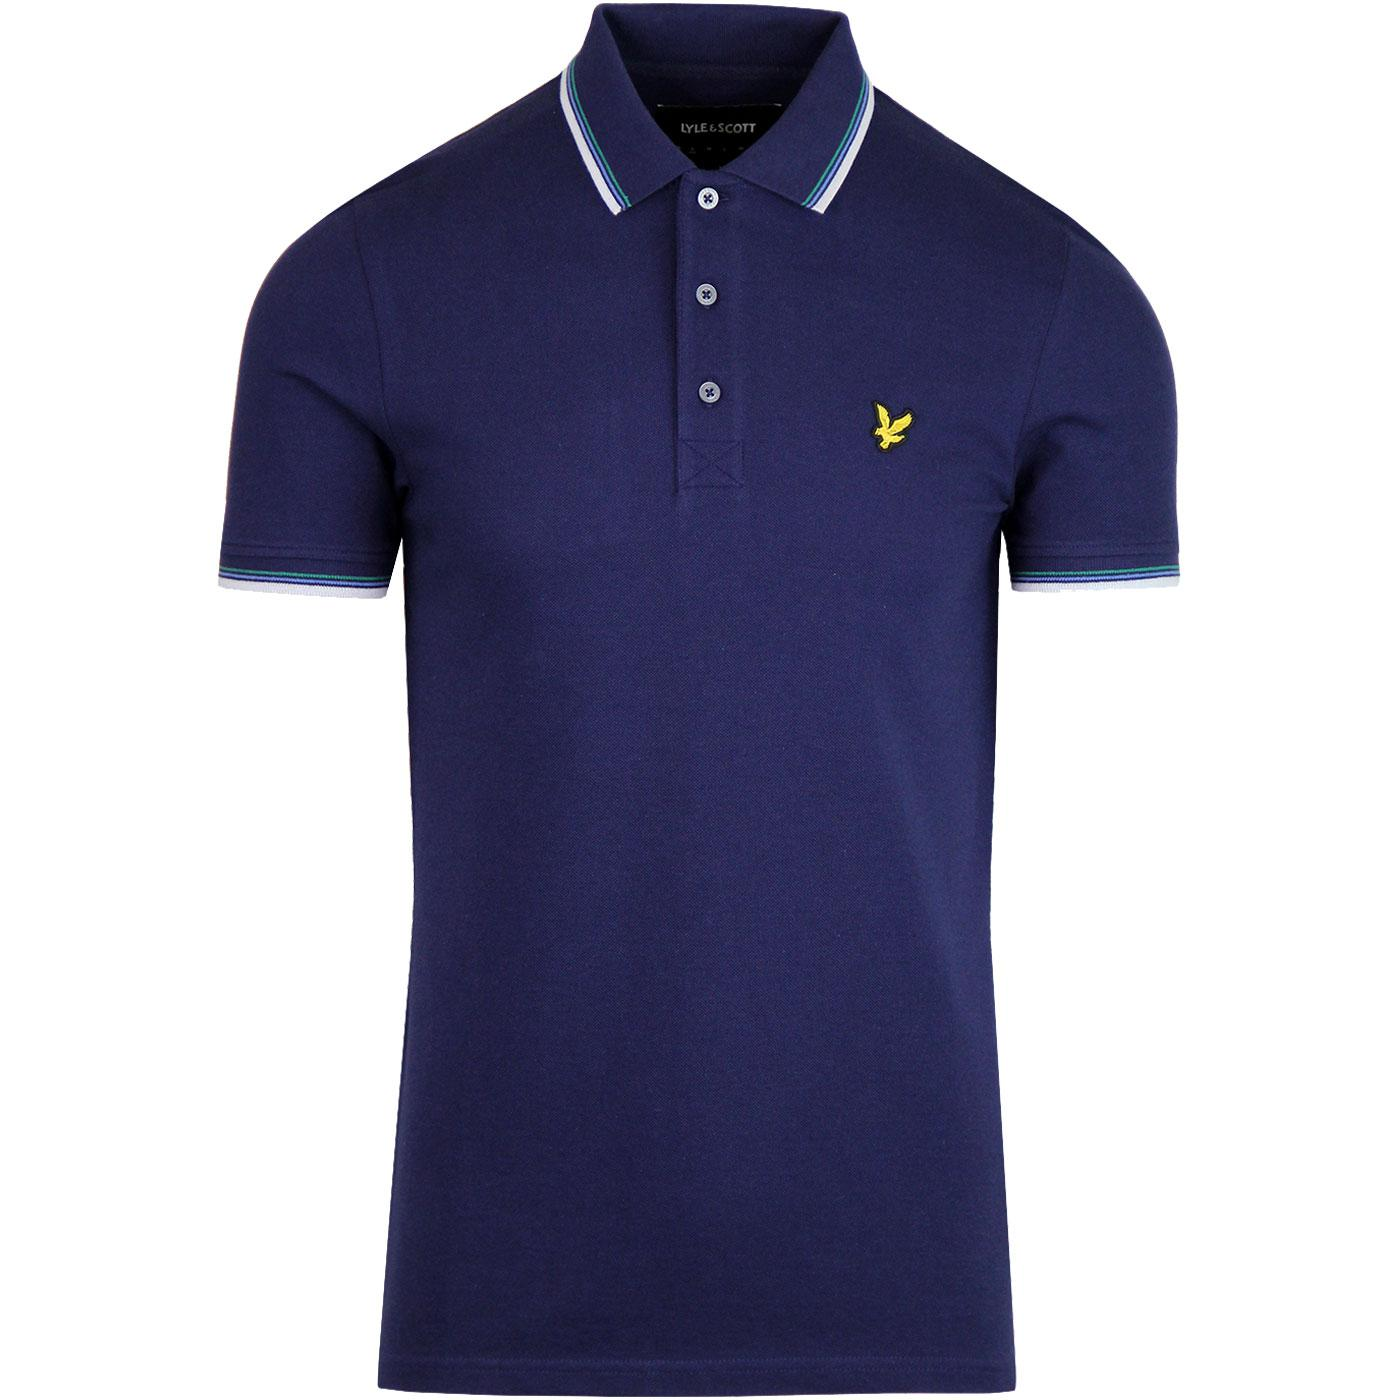 LYLE & SCOTT Men's Tipped Mod Pique Polo - NAVY